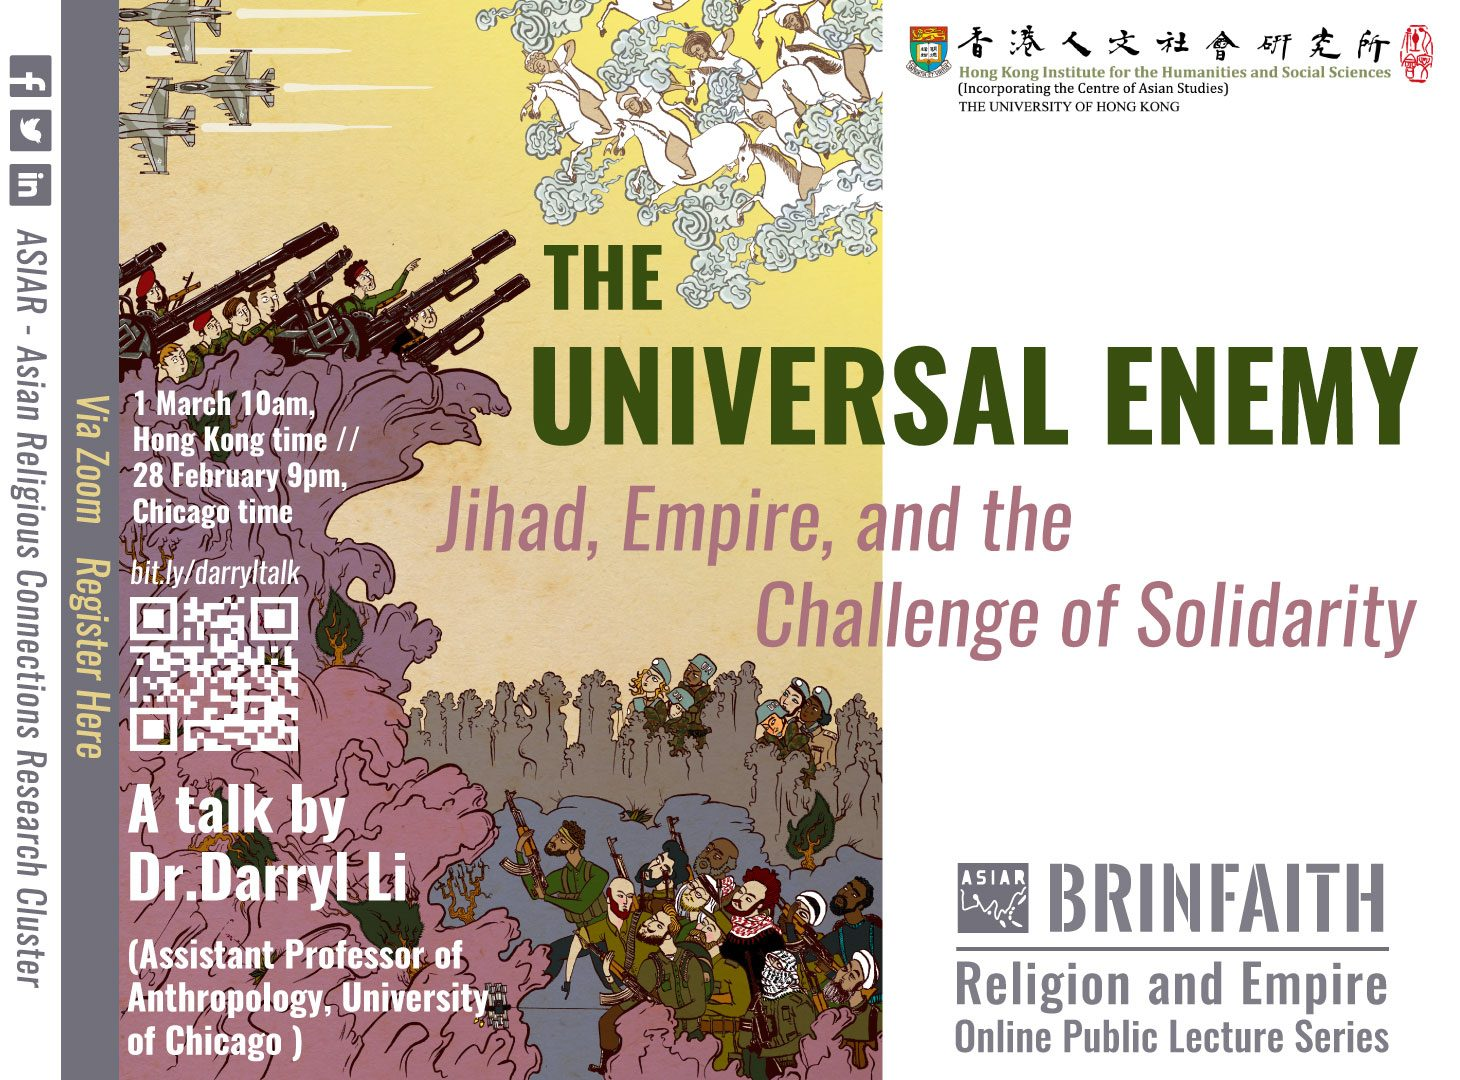 """BRINFAITH Religion and Empire Lecture Series on """"The Universal Enemy: Jihad, Empire, and the Challenge of Solidarity"""" by Dr. Darryl Li (March 1, 2021)"""